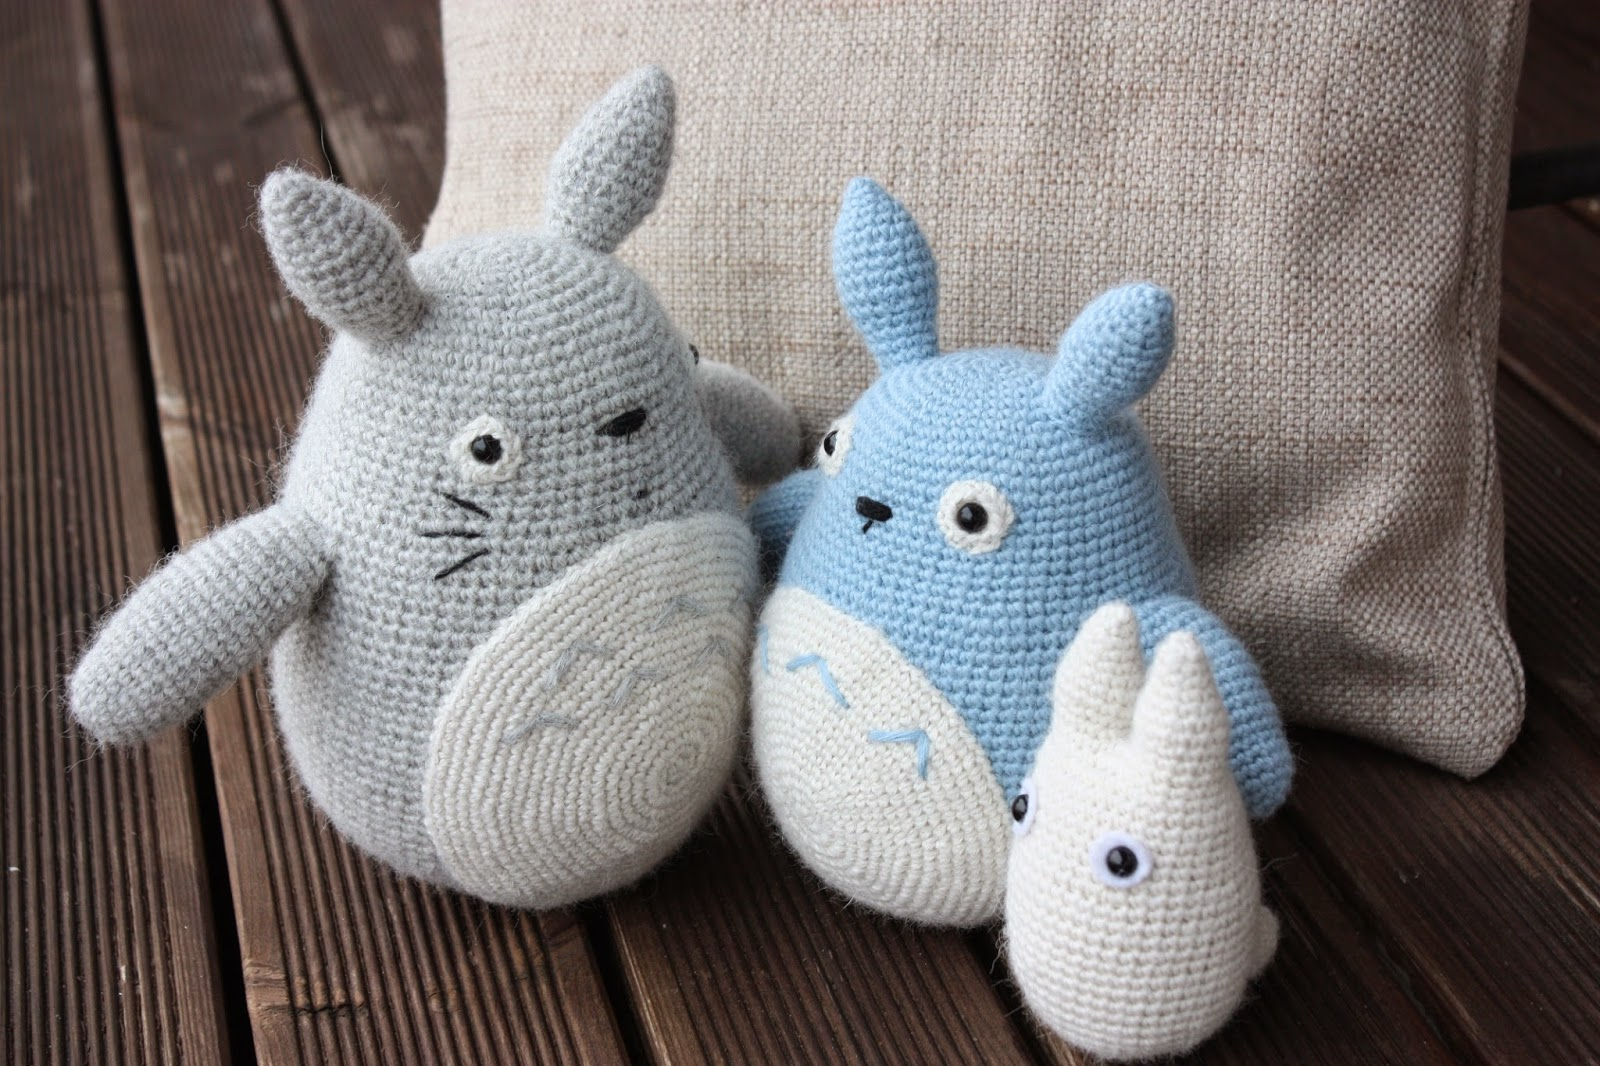 Alpaca Crochet Amigurumi : Happyamigurumi amigurumi totoros grey blue and white crochet totoro